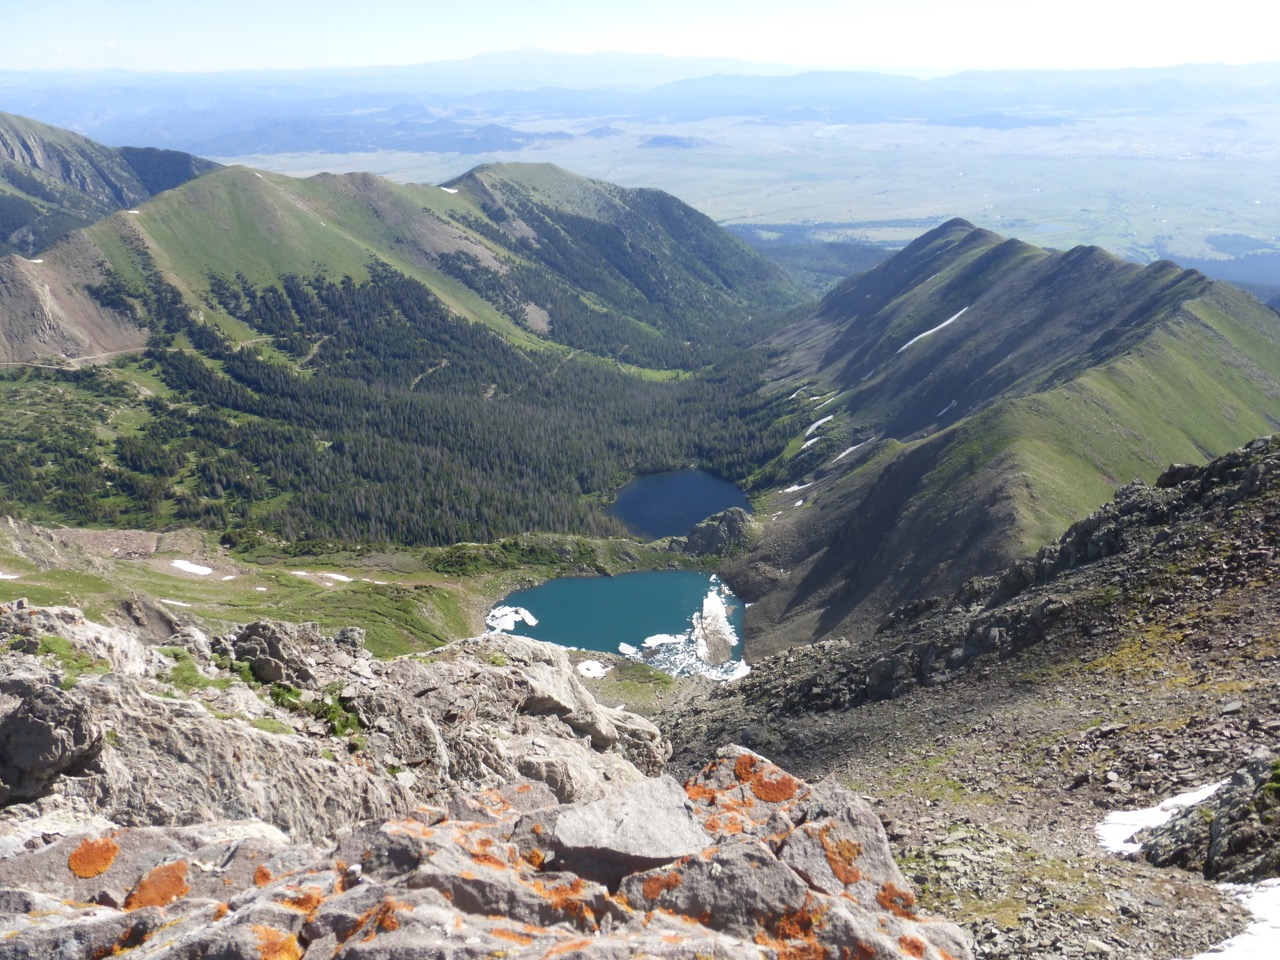 The view of Horseshoe and Hermit lakes from Eureka.